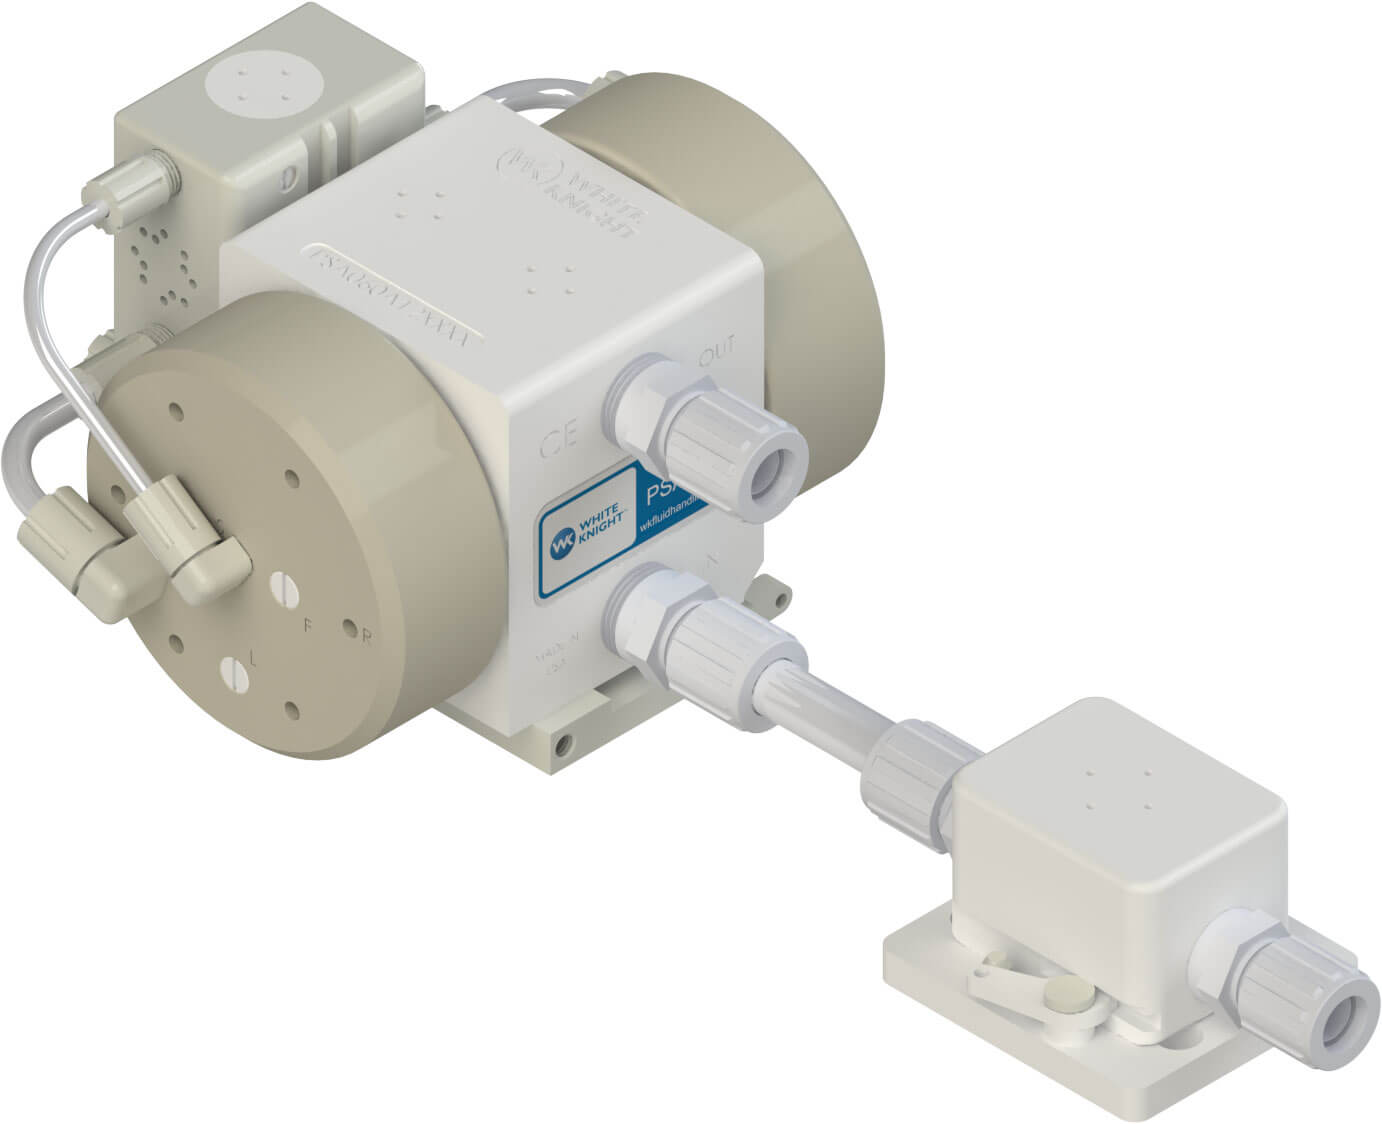 PSA060 Pump with FD12-P-BF12 Pre-Filter Catcher